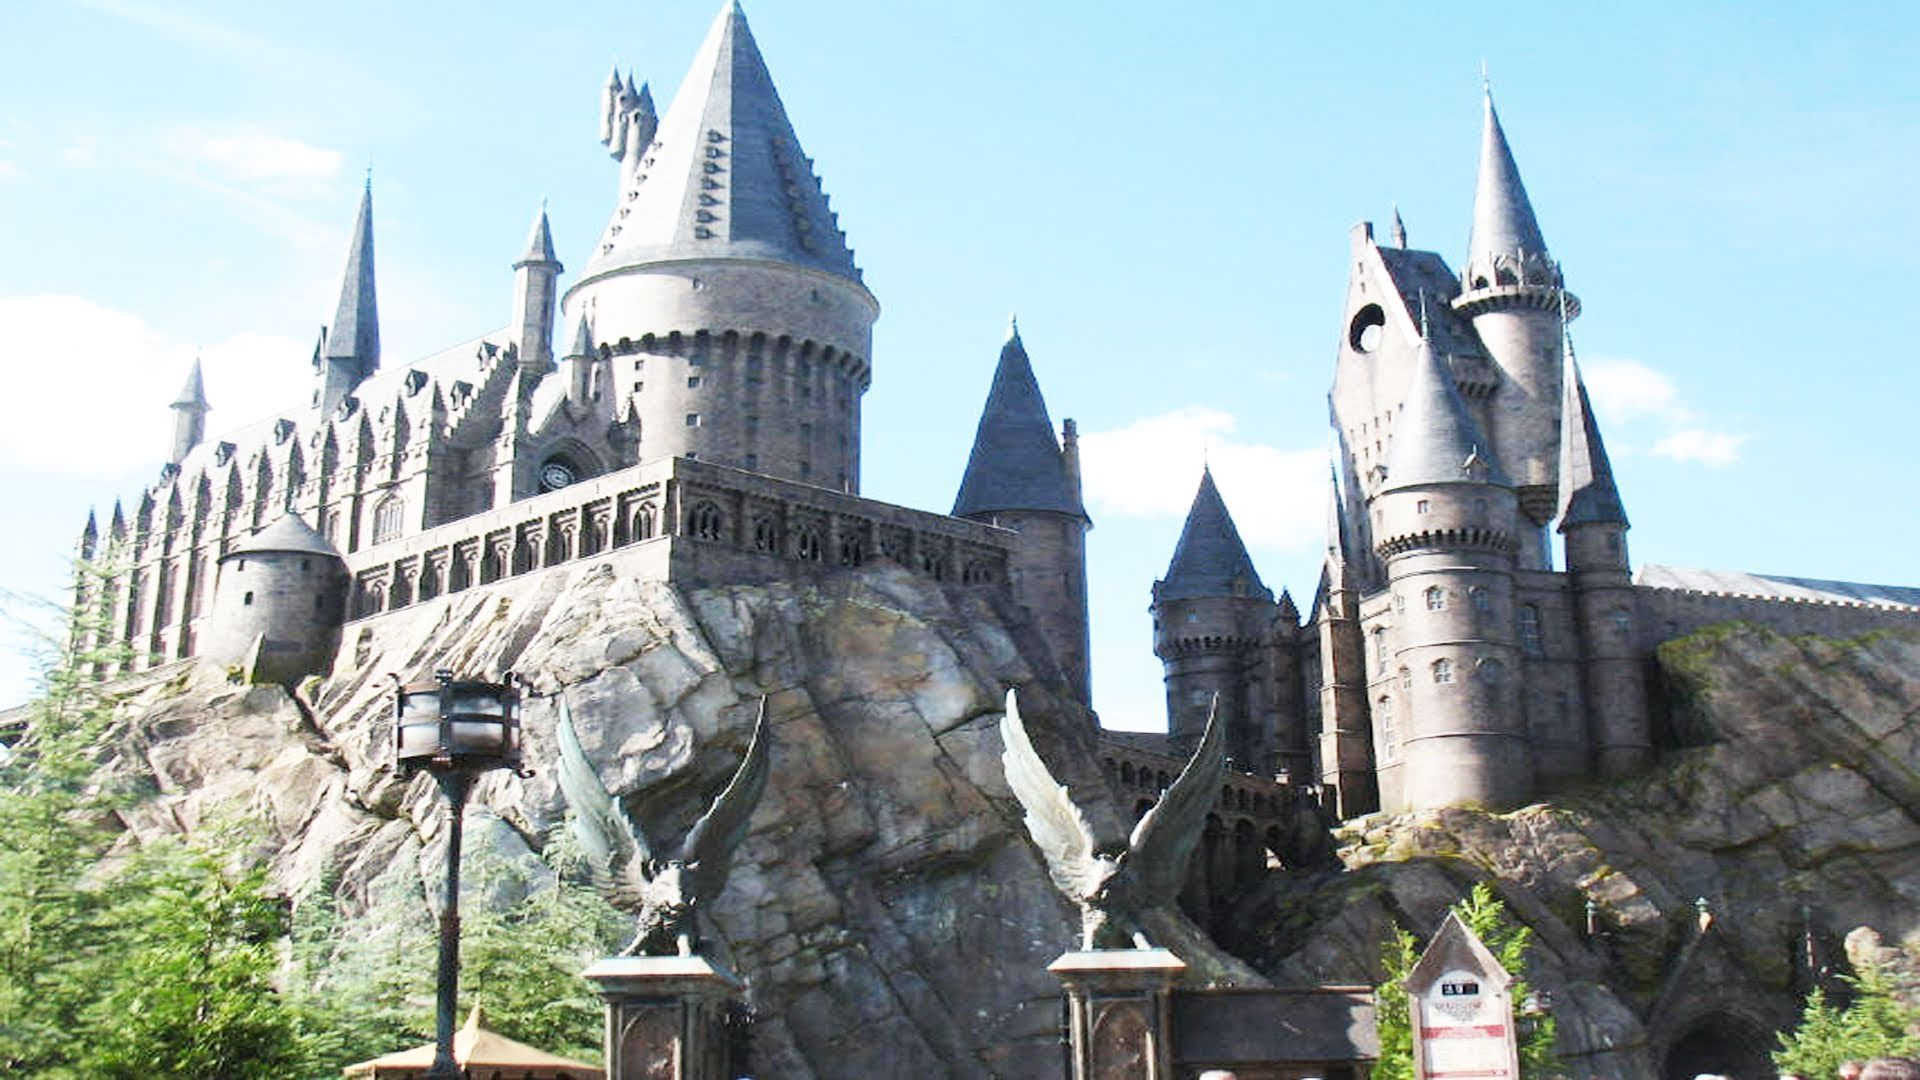 Harry Potter And The Forbidden Journey 2010 Draco Hogwarts Castle Harry Potter Forbidden Journey Ride Hd Complete Experience Islands Of Harry Potter Theme Park Hogwarts Castle Wizarding World Of Harry Potter